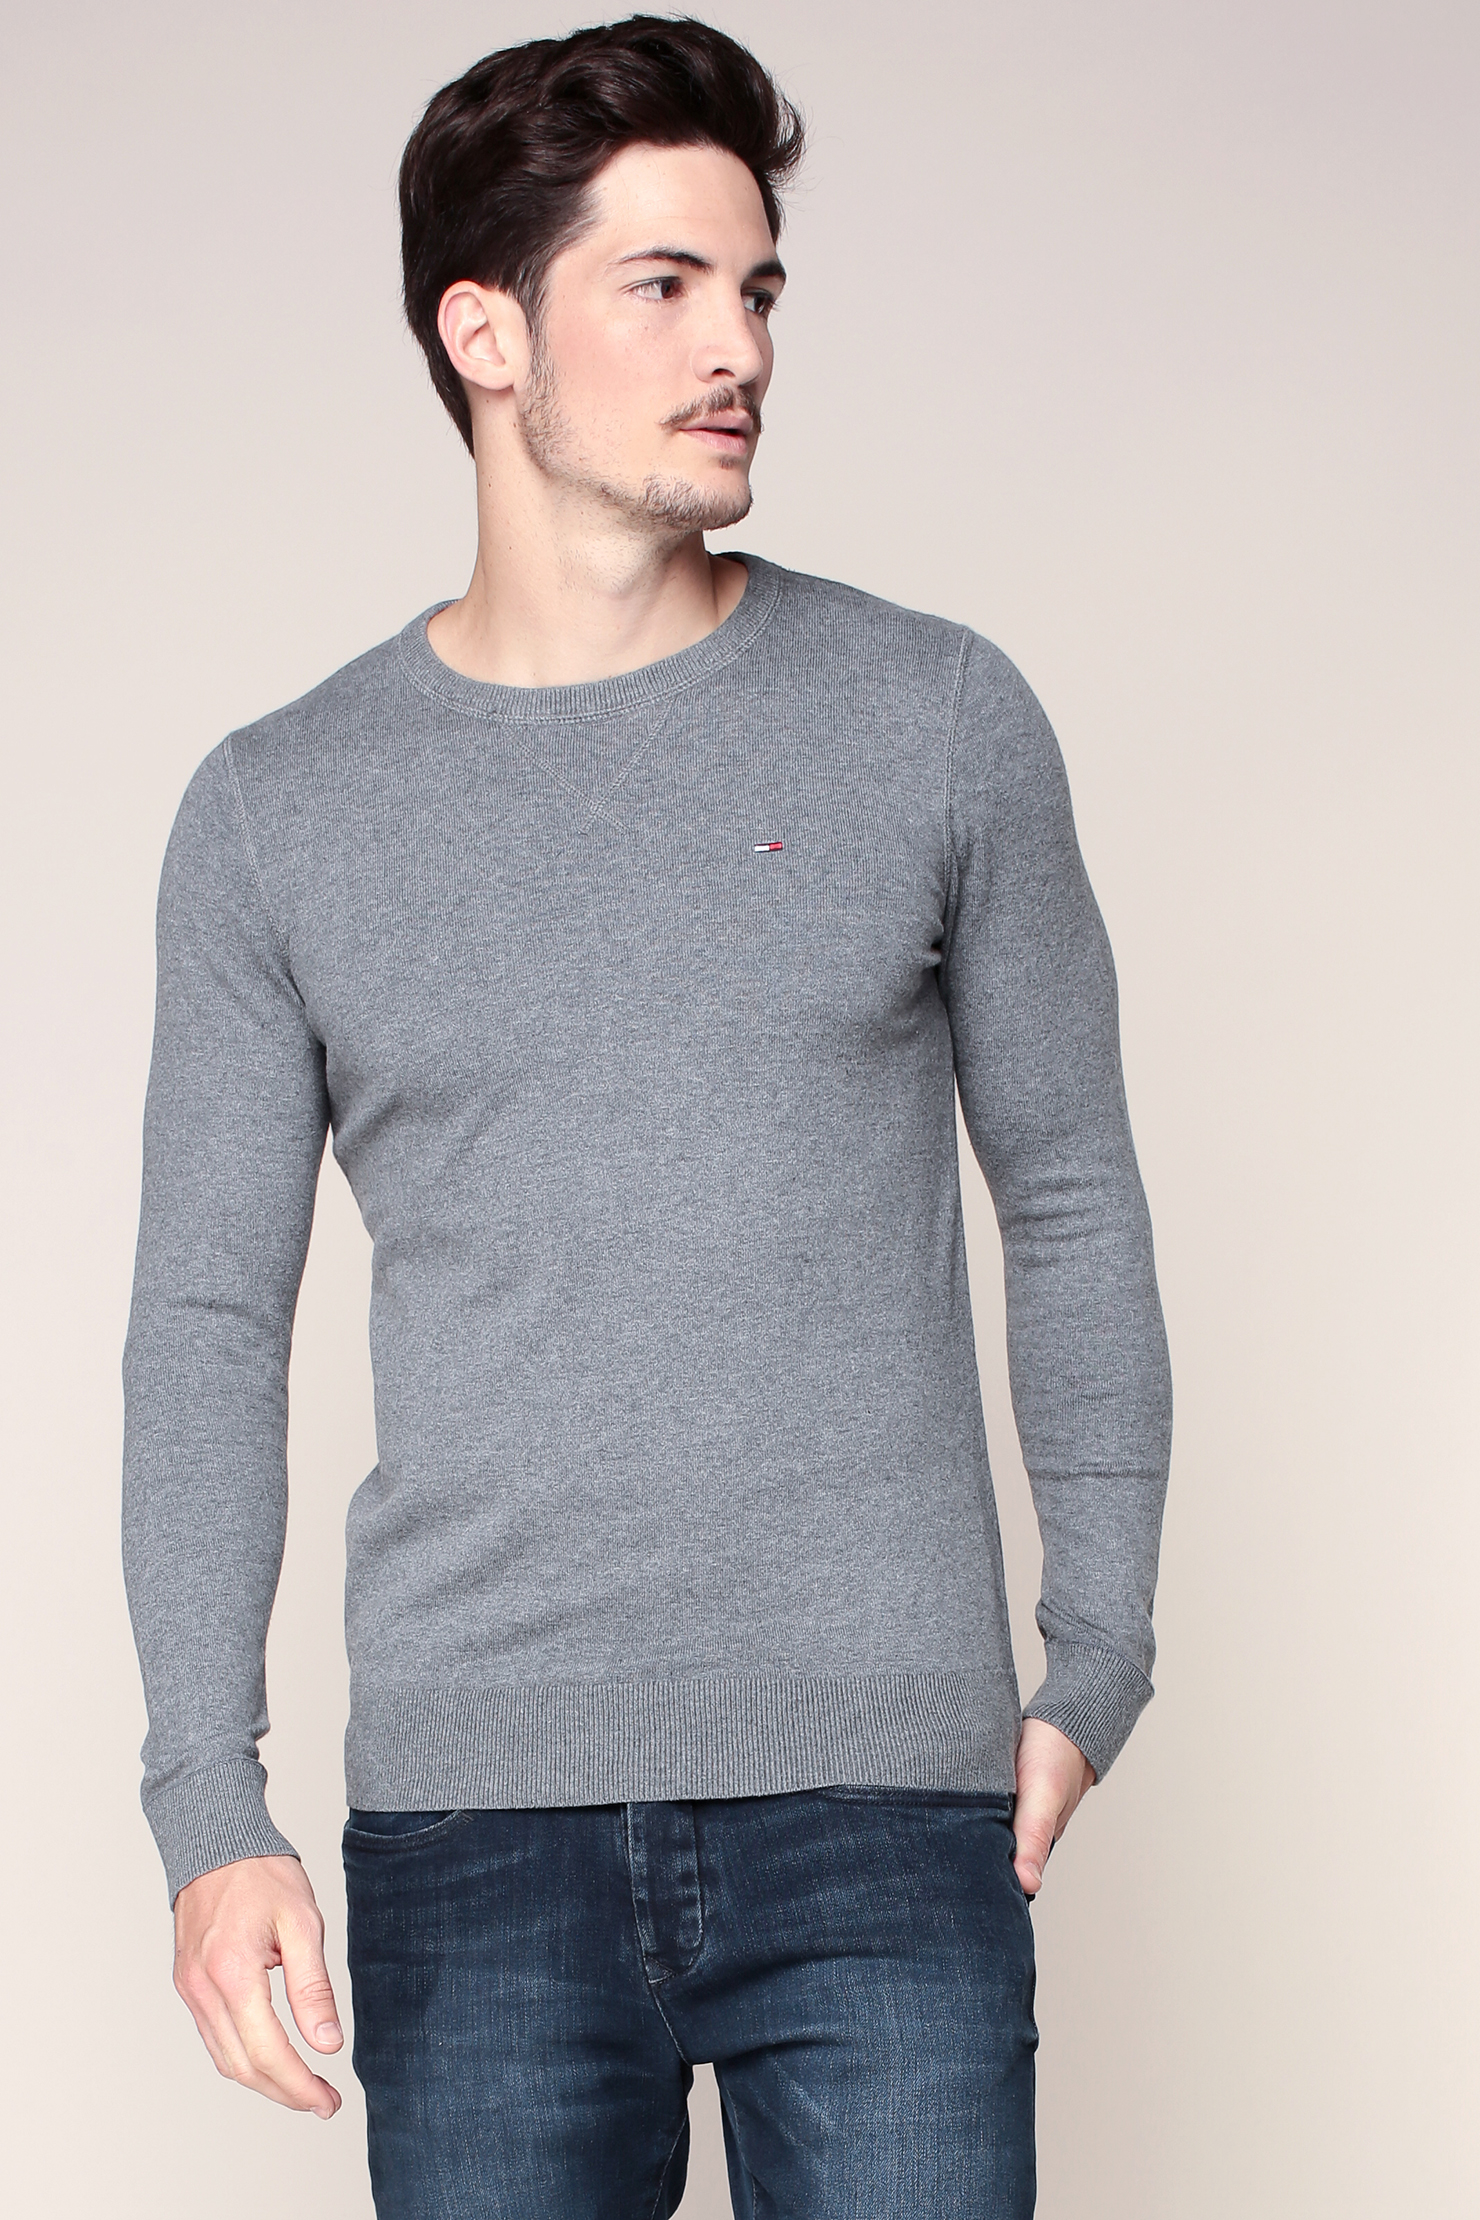 Jumper denim men